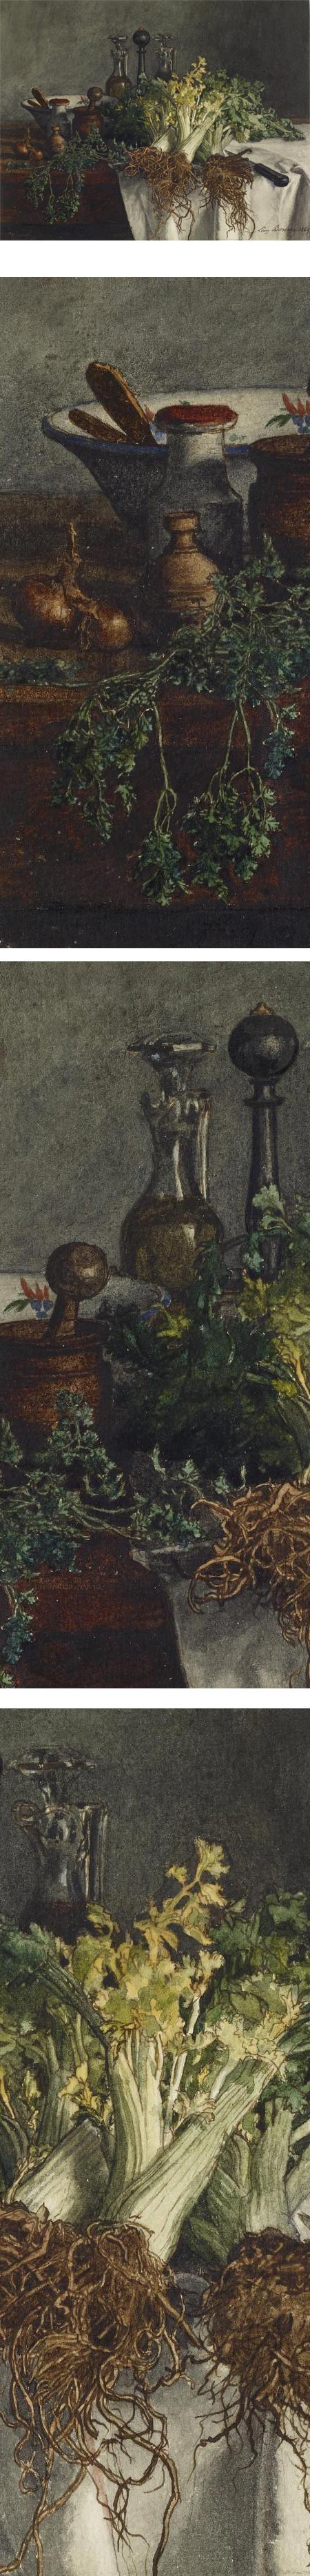 Still Life on Kitchen Table with Celery, Parsley, Bowl, and Cruets; Leon Bonvin watercolor